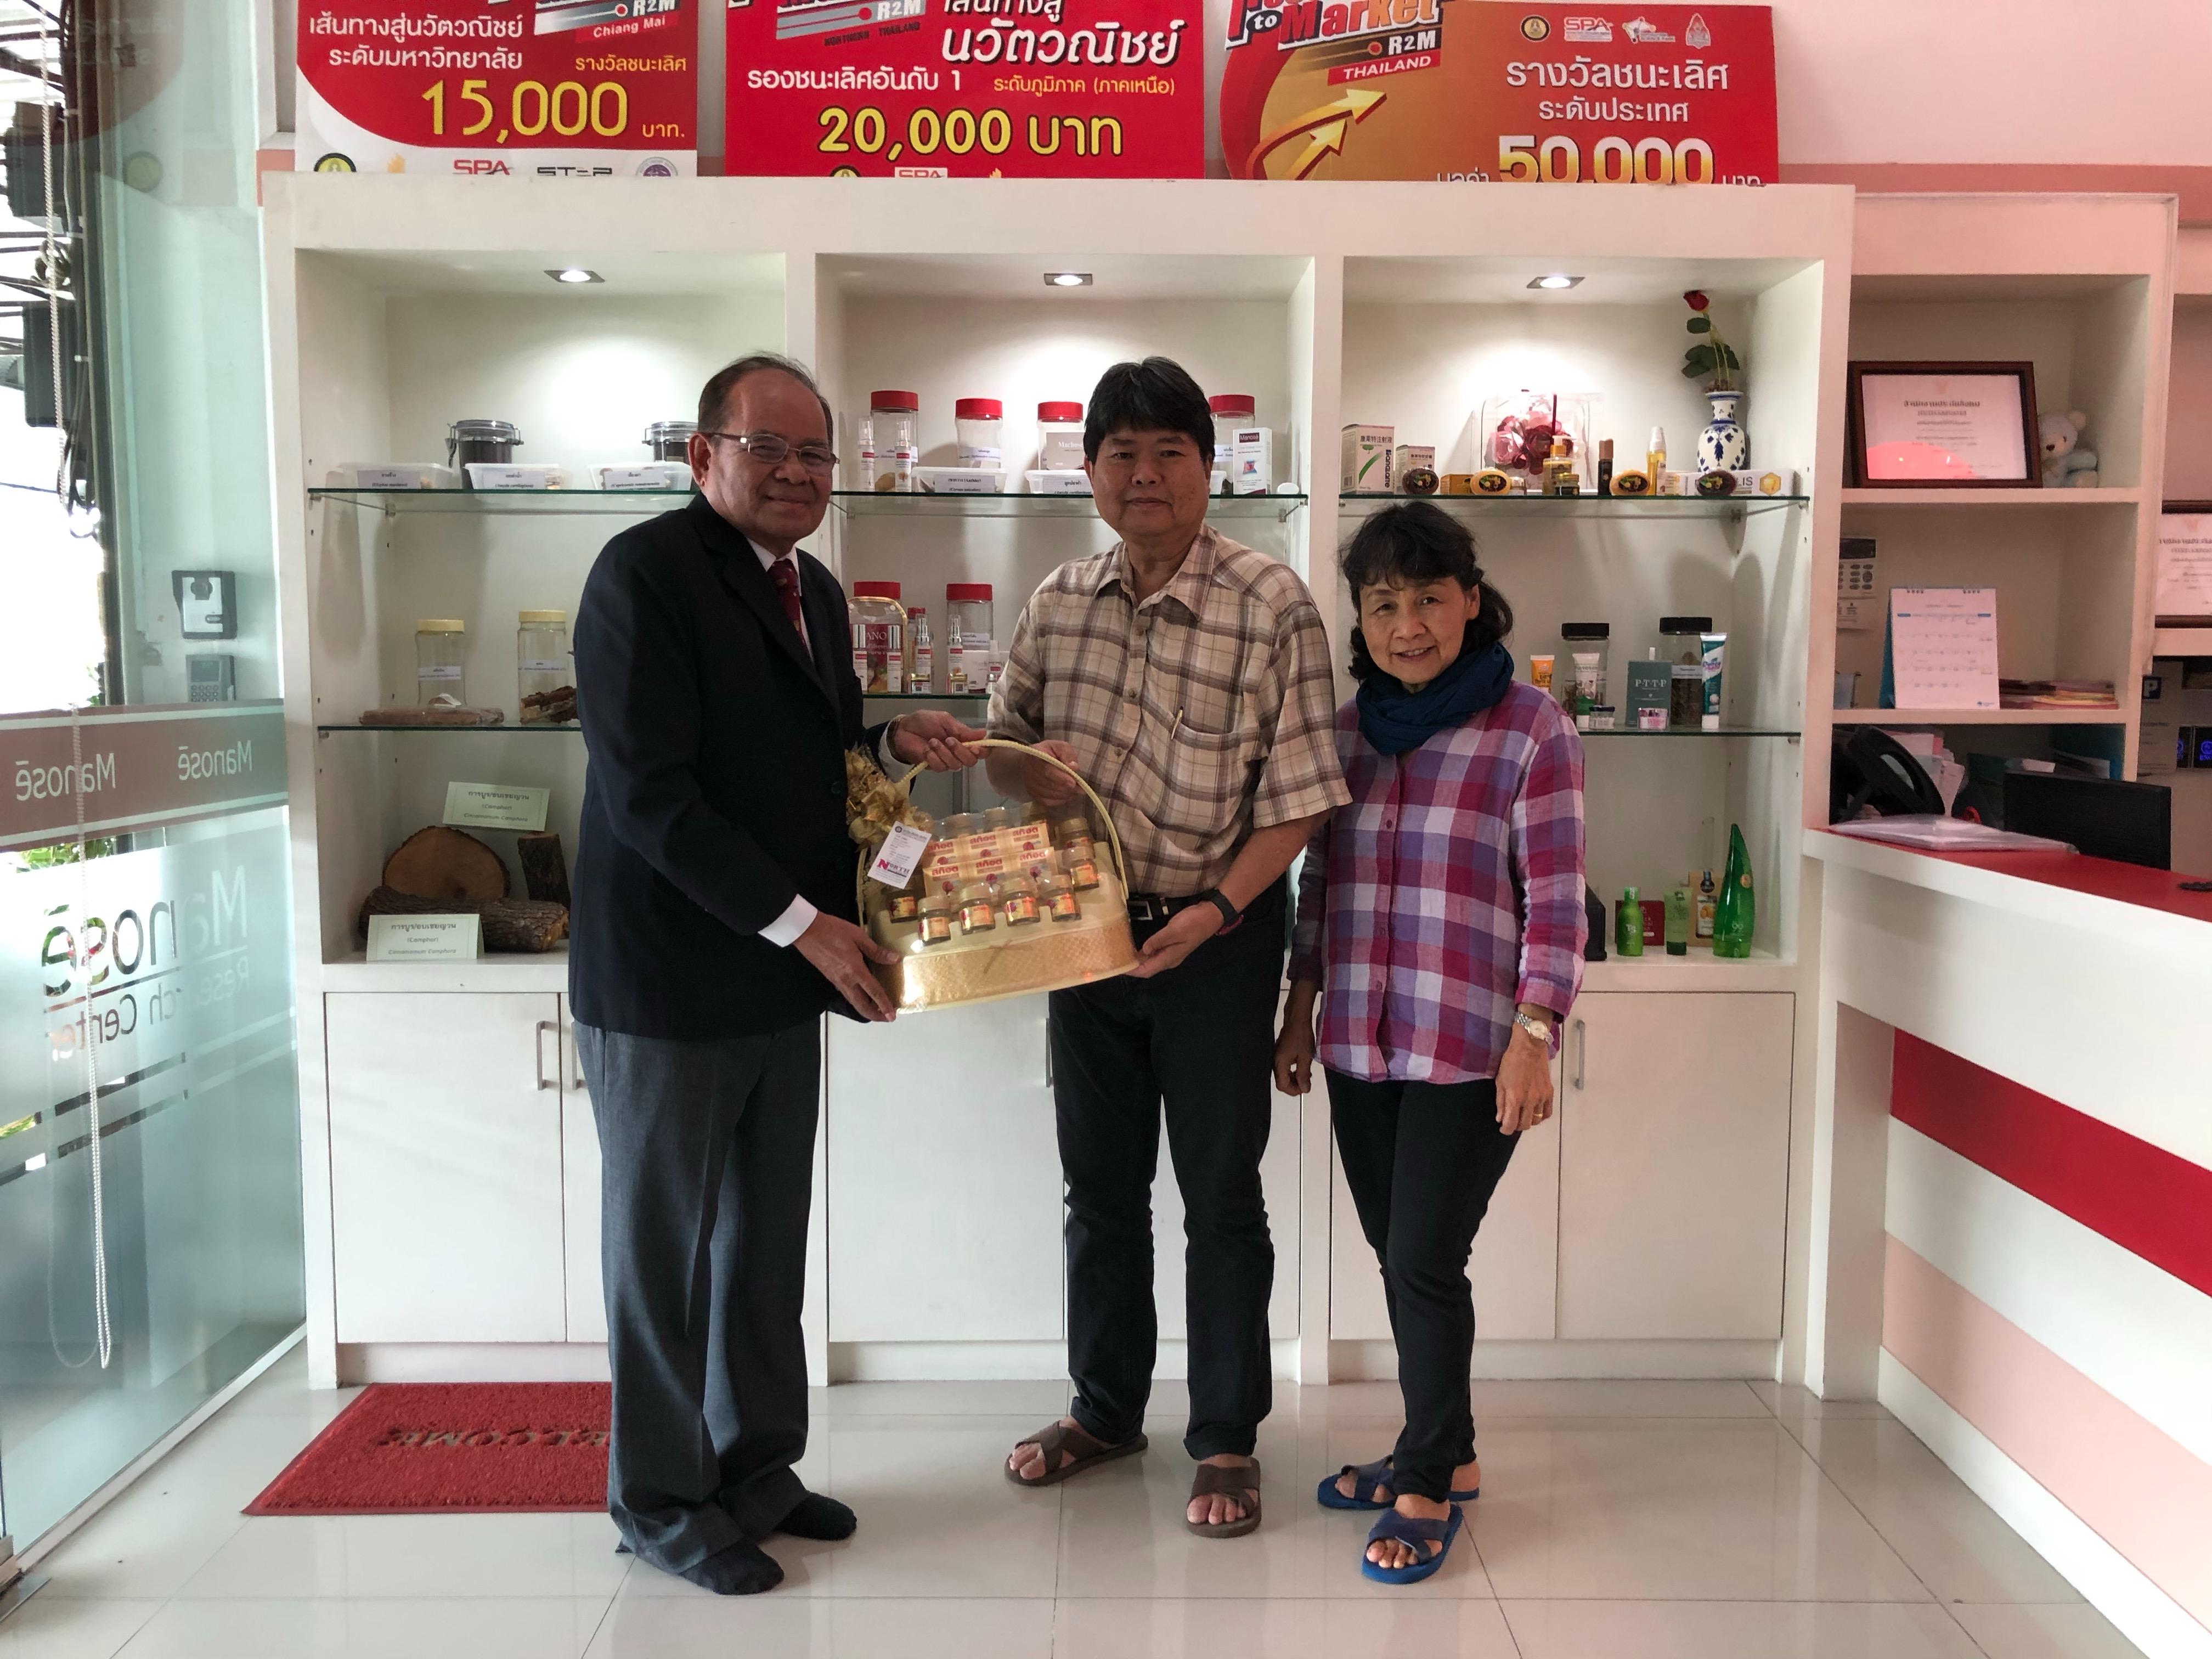 Dr. Wivat Sethachuay, Advisor to the President of North-Chiang Mai University has presented a New Year Gift to the Executives of Manose Health and Beauty Research Center on the occasion of New year 2019